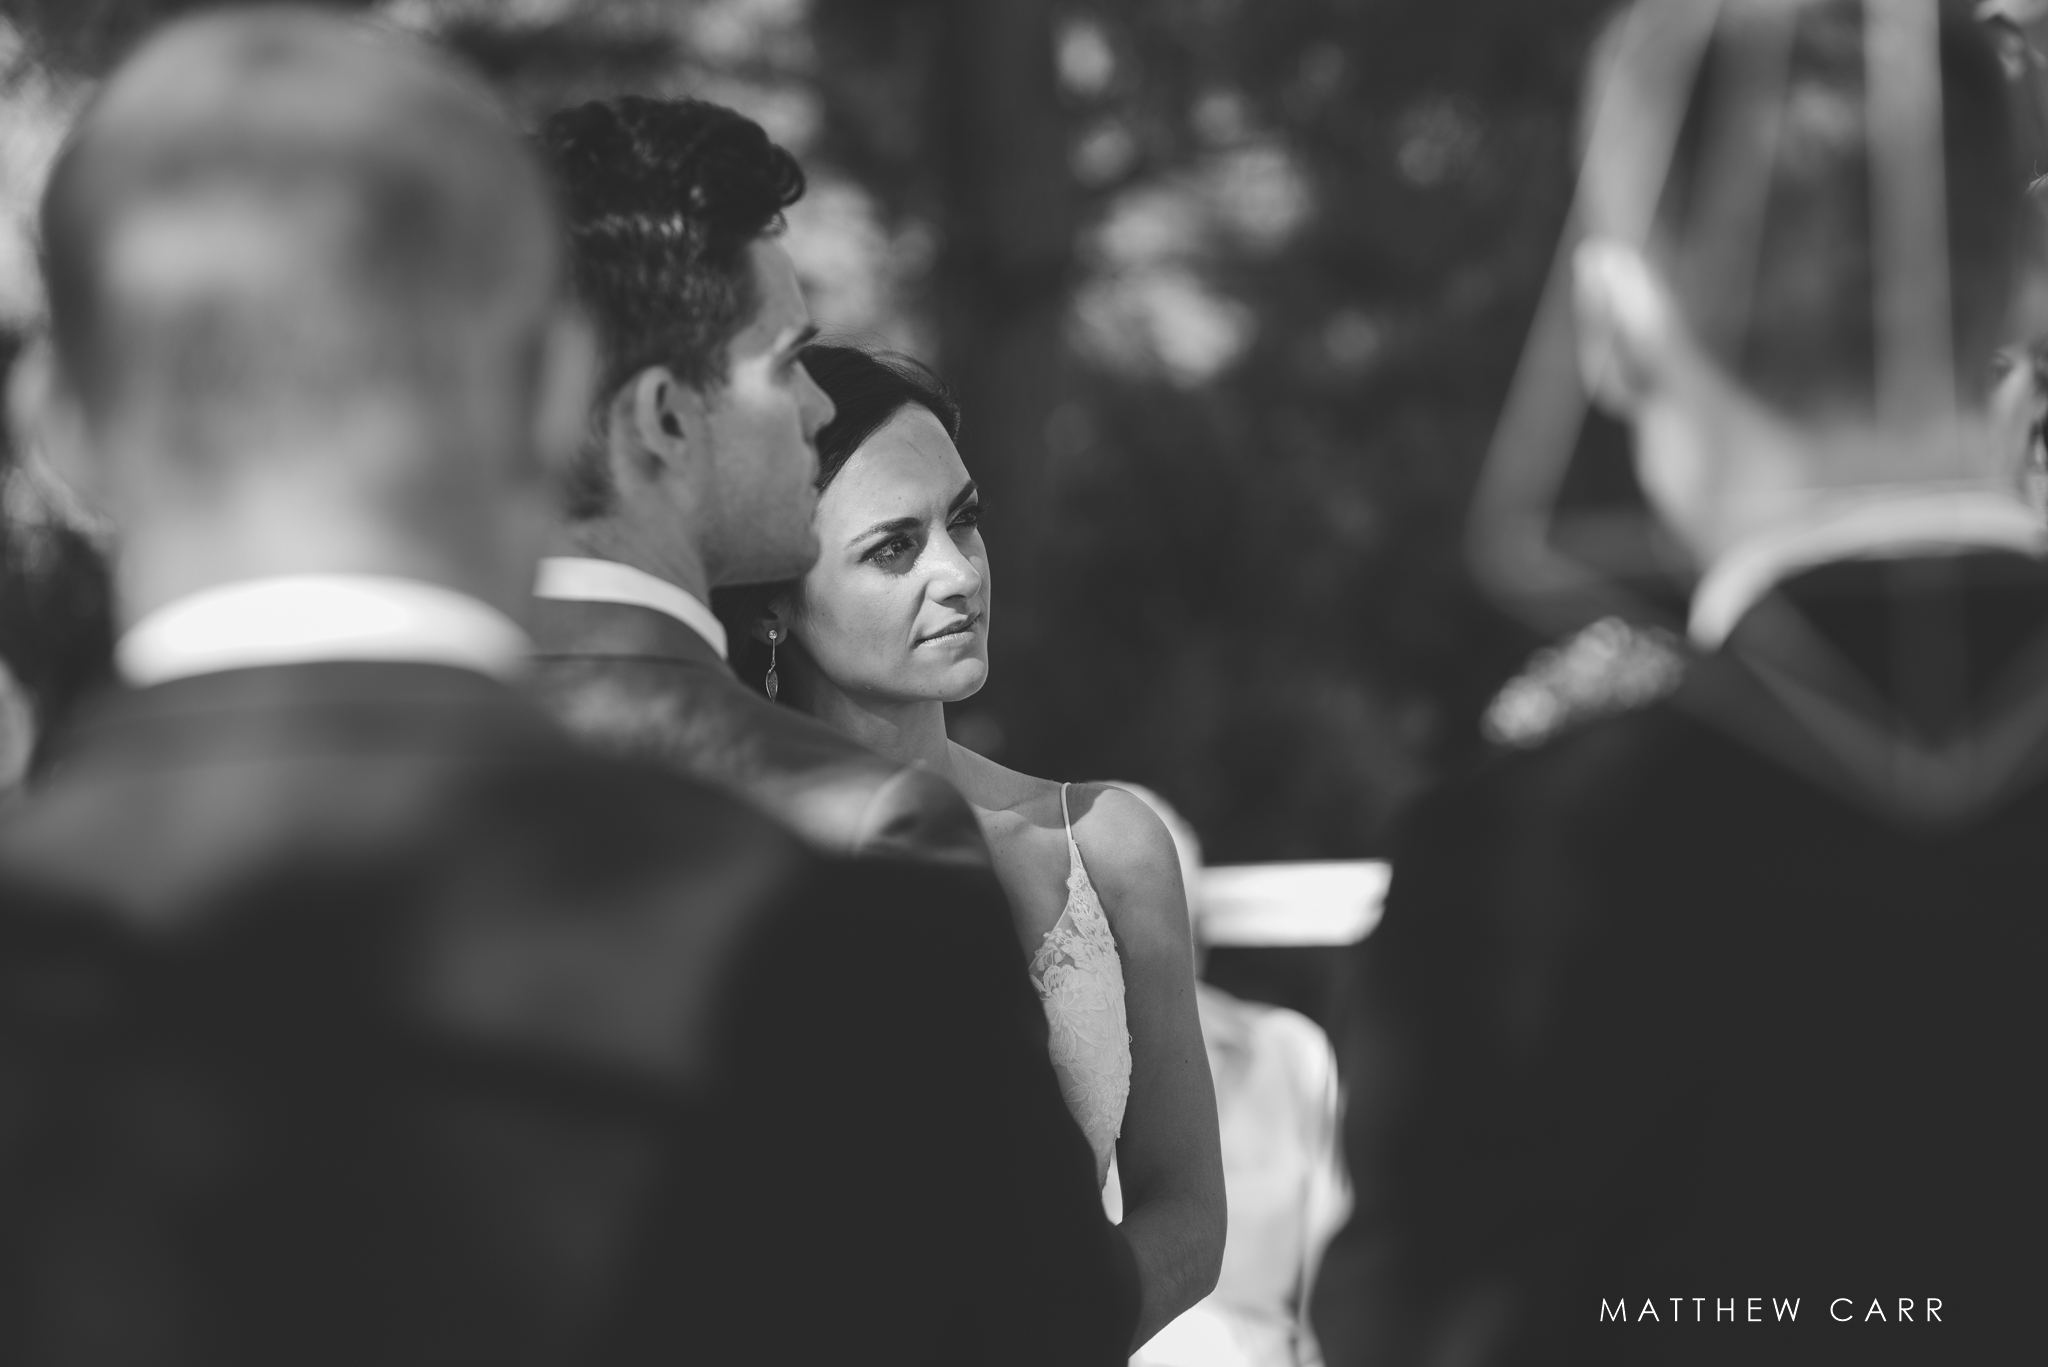 ceremony & after - low res (viewing, social media) (44 of 111).JPG